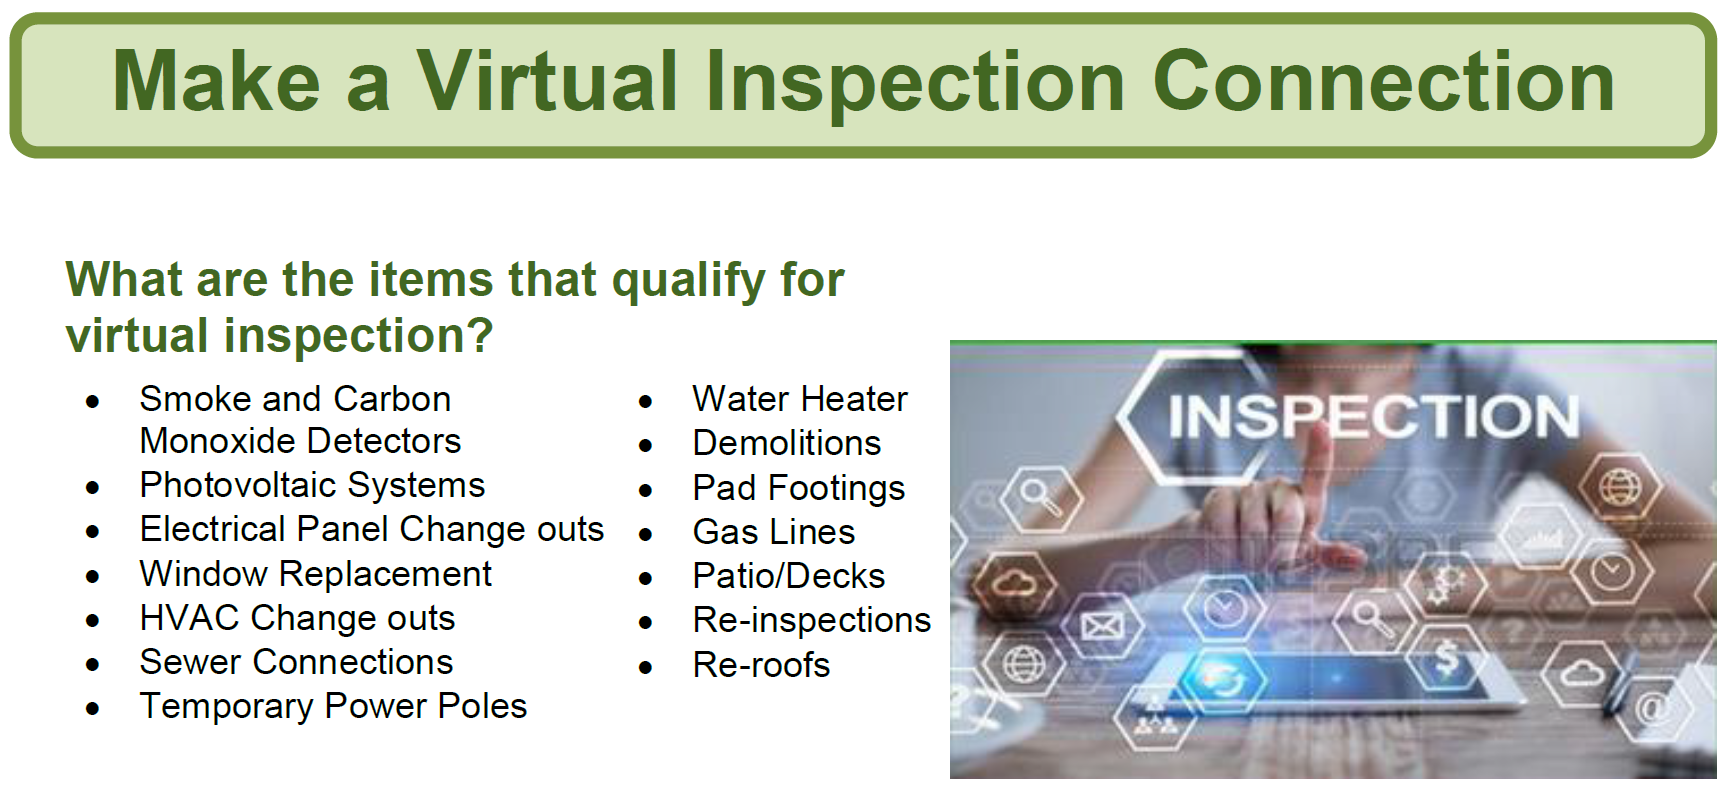 Virtual Inspection Connection Image Opens in new window